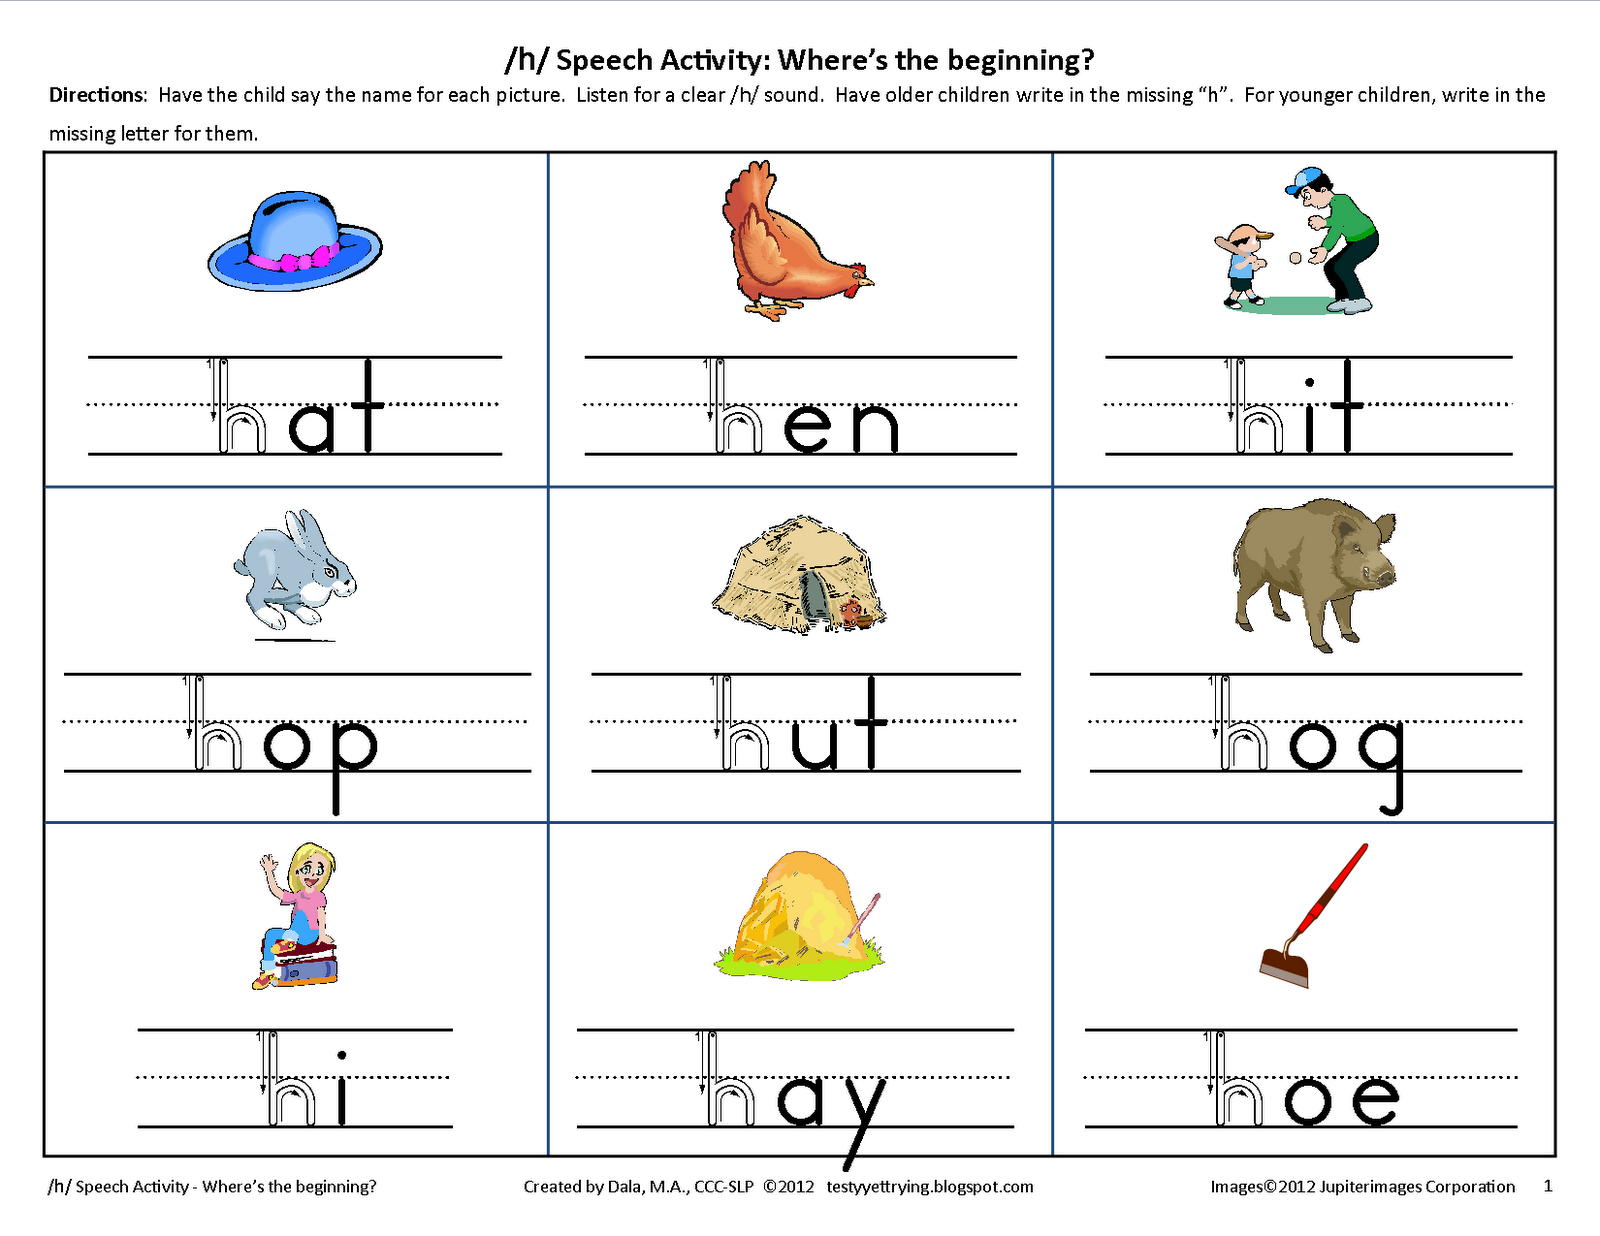 Weirdmailus  Marvellous Testy Yet Trying Initial H Speech Worksheet With Great Make Classroom Teachers Happy Reinforce Phonics And Handwriting And Practice Speech All At The Same Time With Attractive Consecutive Numbers Worksheet Also Noun Worksheets Grade  In Addition Division Property Of Exponents Worksheet And Preposition Worksheets High School As Well As Stem And Leaf Plot Worksheet Printable Additionally Boundary Setting Worksheets From Testyyettryingblogspotcom With Weirdmailus  Great Testy Yet Trying Initial H Speech Worksheet With Attractive Make Classroom Teachers Happy Reinforce Phonics And Handwriting And Practice Speech All At The Same Time And Marvellous Consecutive Numbers Worksheet Also Noun Worksheets Grade  In Addition Division Property Of Exponents Worksheet From Testyyettryingblogspotcom